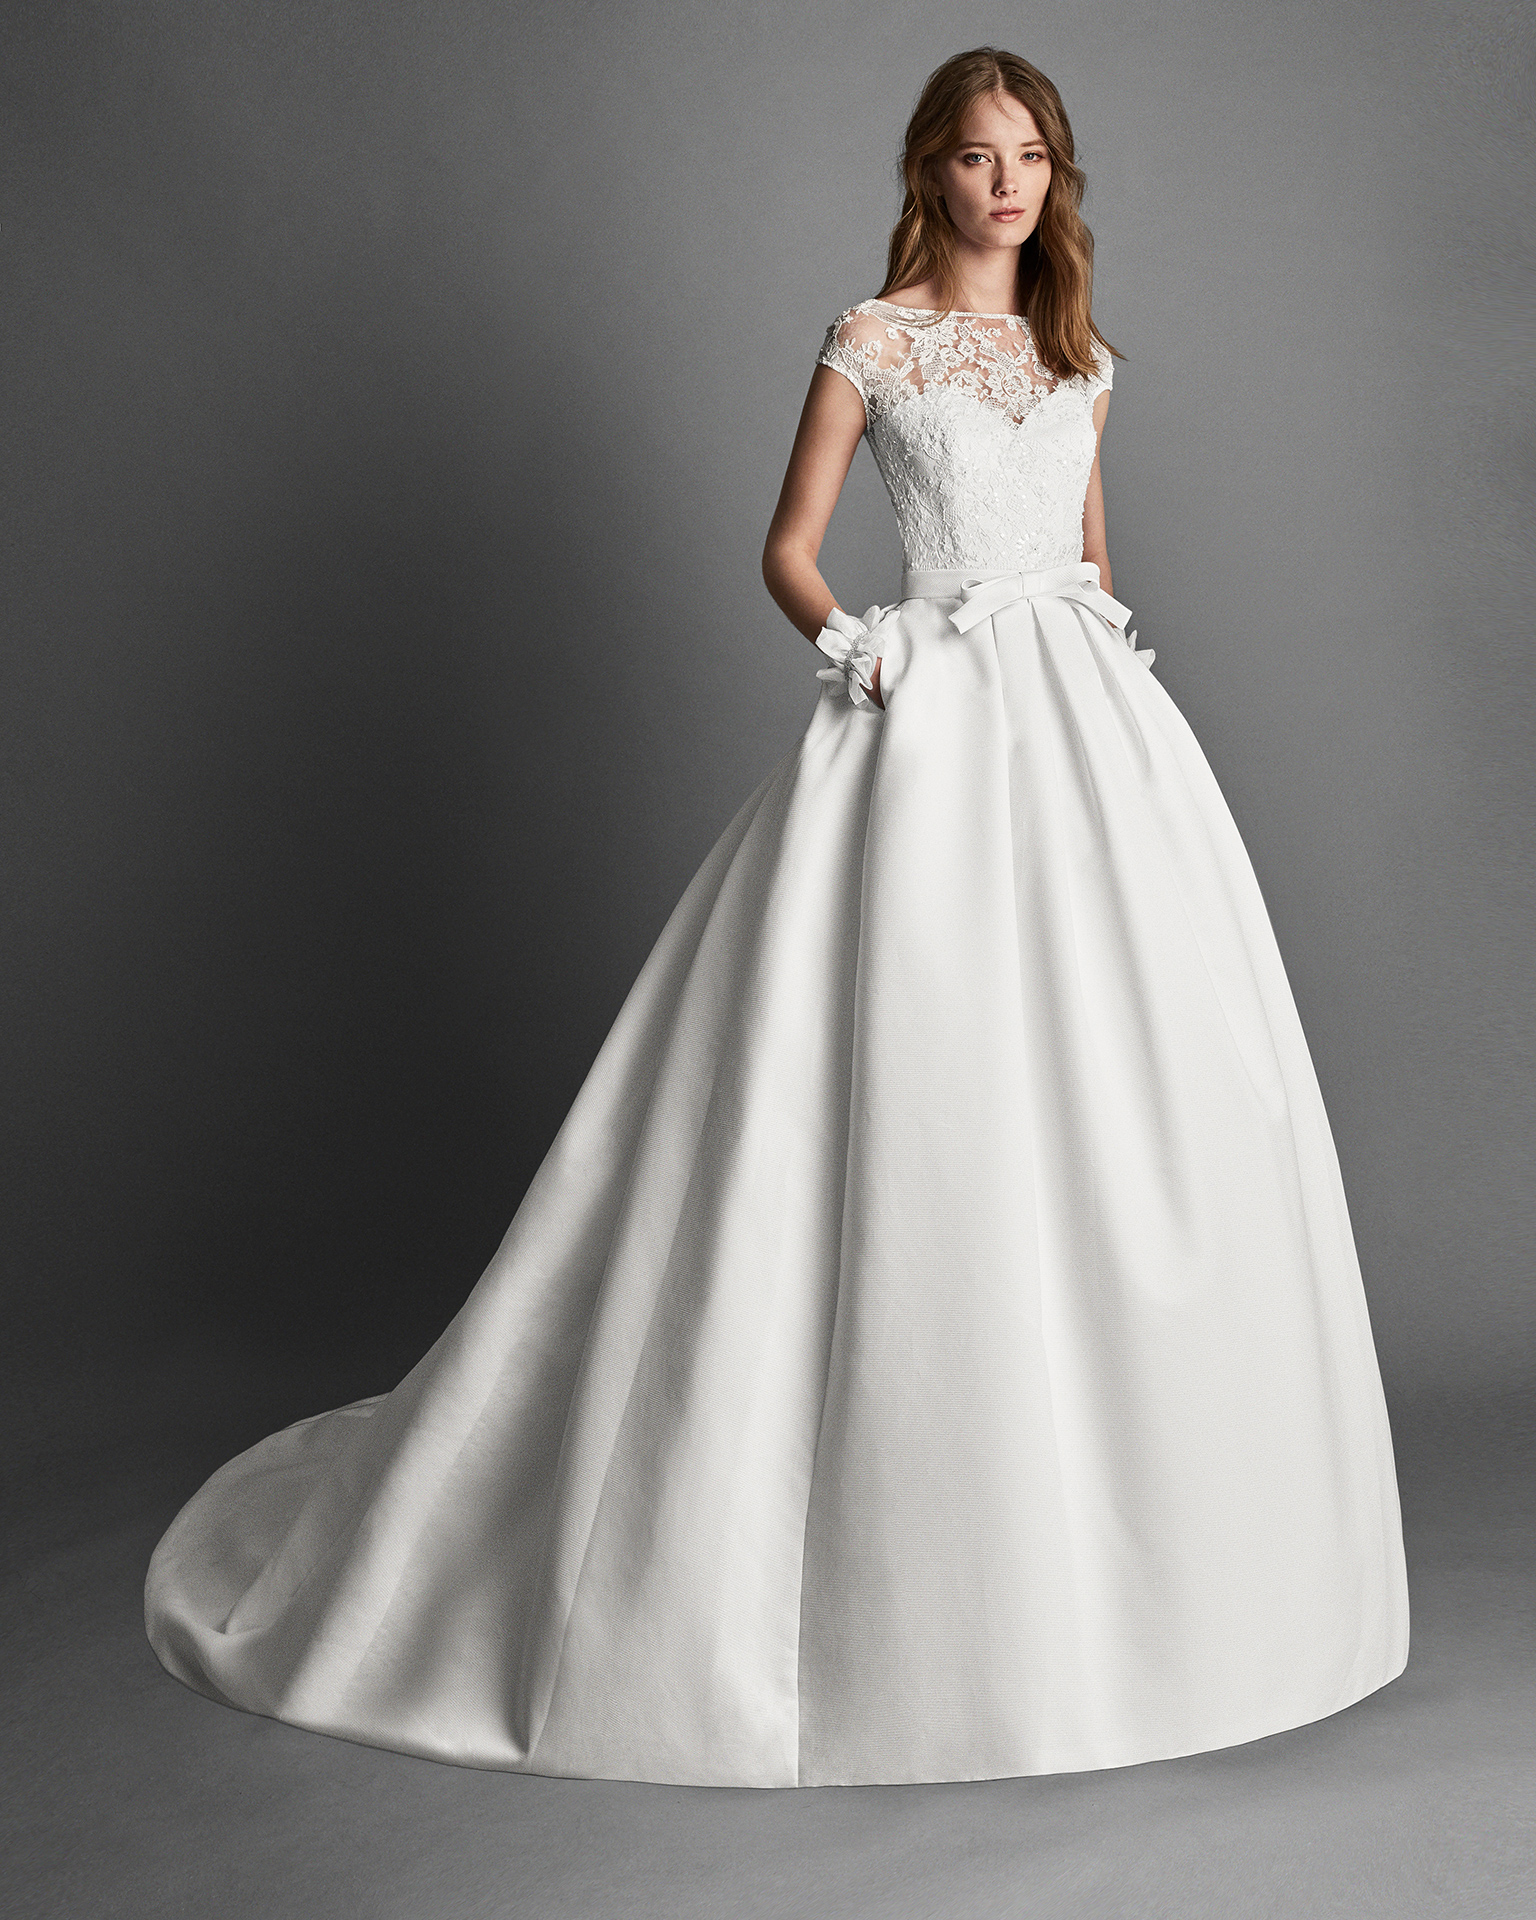 Classic-style beaded lace and Ottoman wedding dress with short sleeves, bateau neckline and pockets, in ivory.